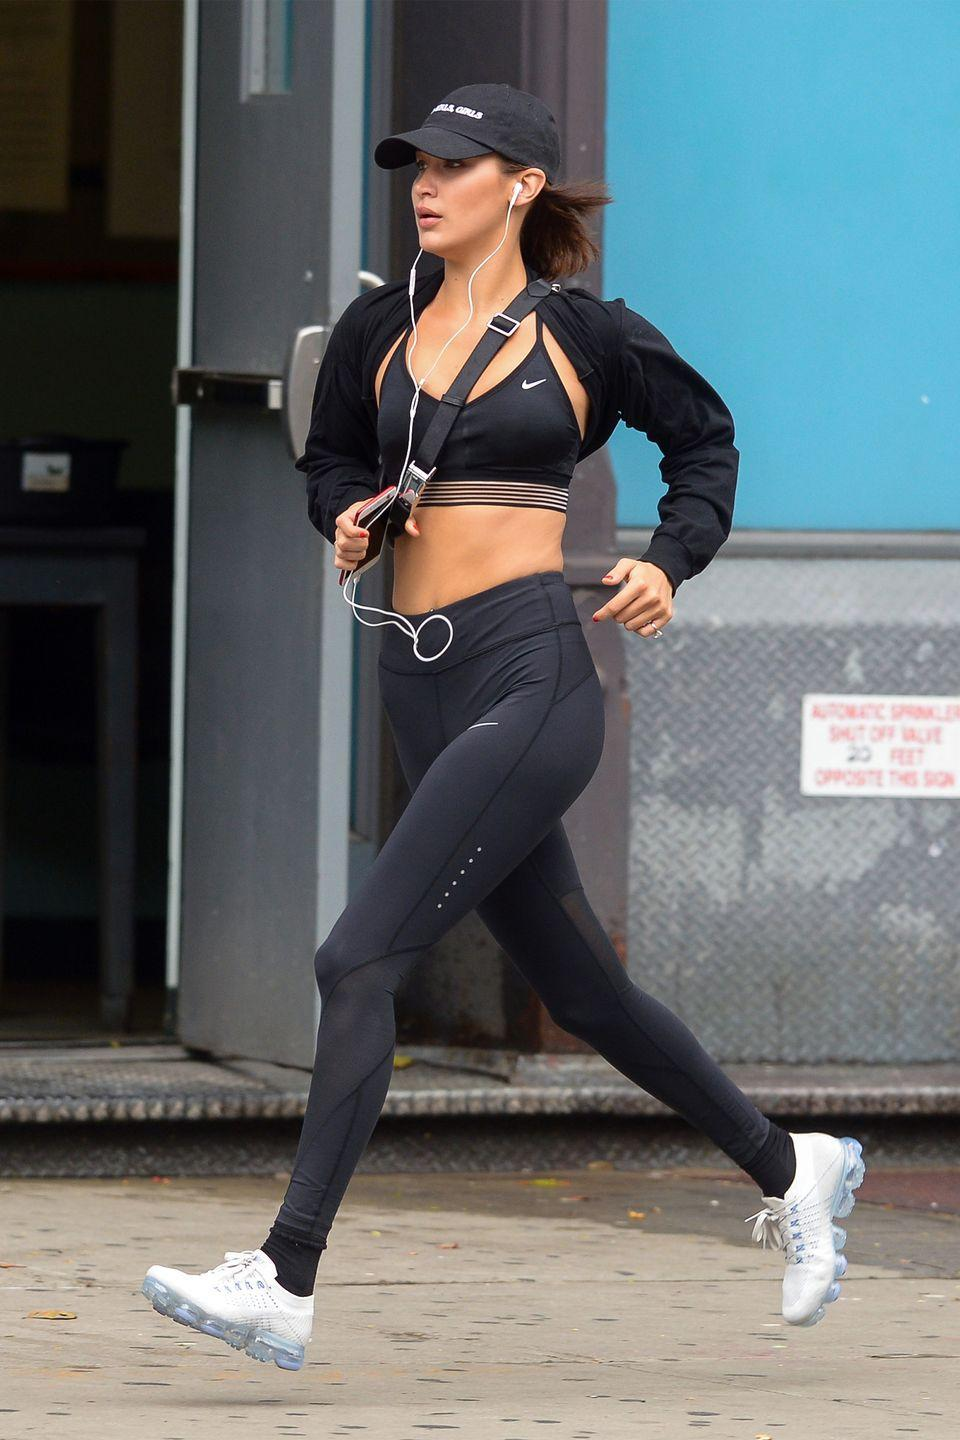 <p>In a Nike sports bra, high-waisted Nike pants and sneakers while on a run in NYC. </p>